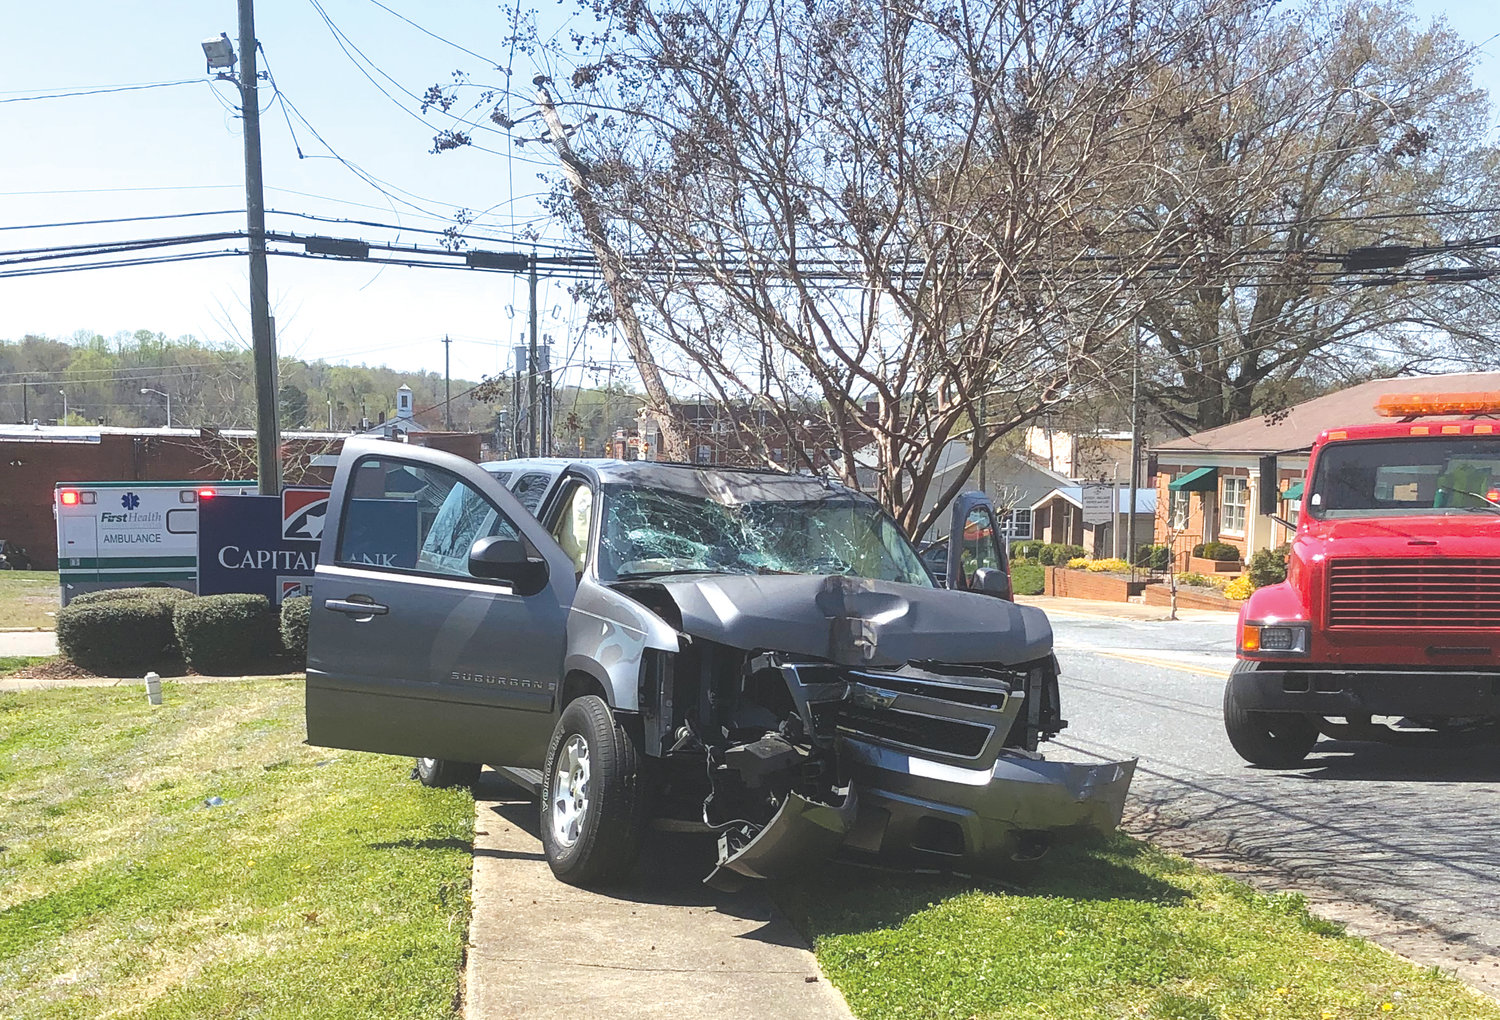 A accident last week forced the closure of Raleigh Street temporarily. A Chevrolet, after being struck, caught air and struck a utility pole, snapping it into pieces.